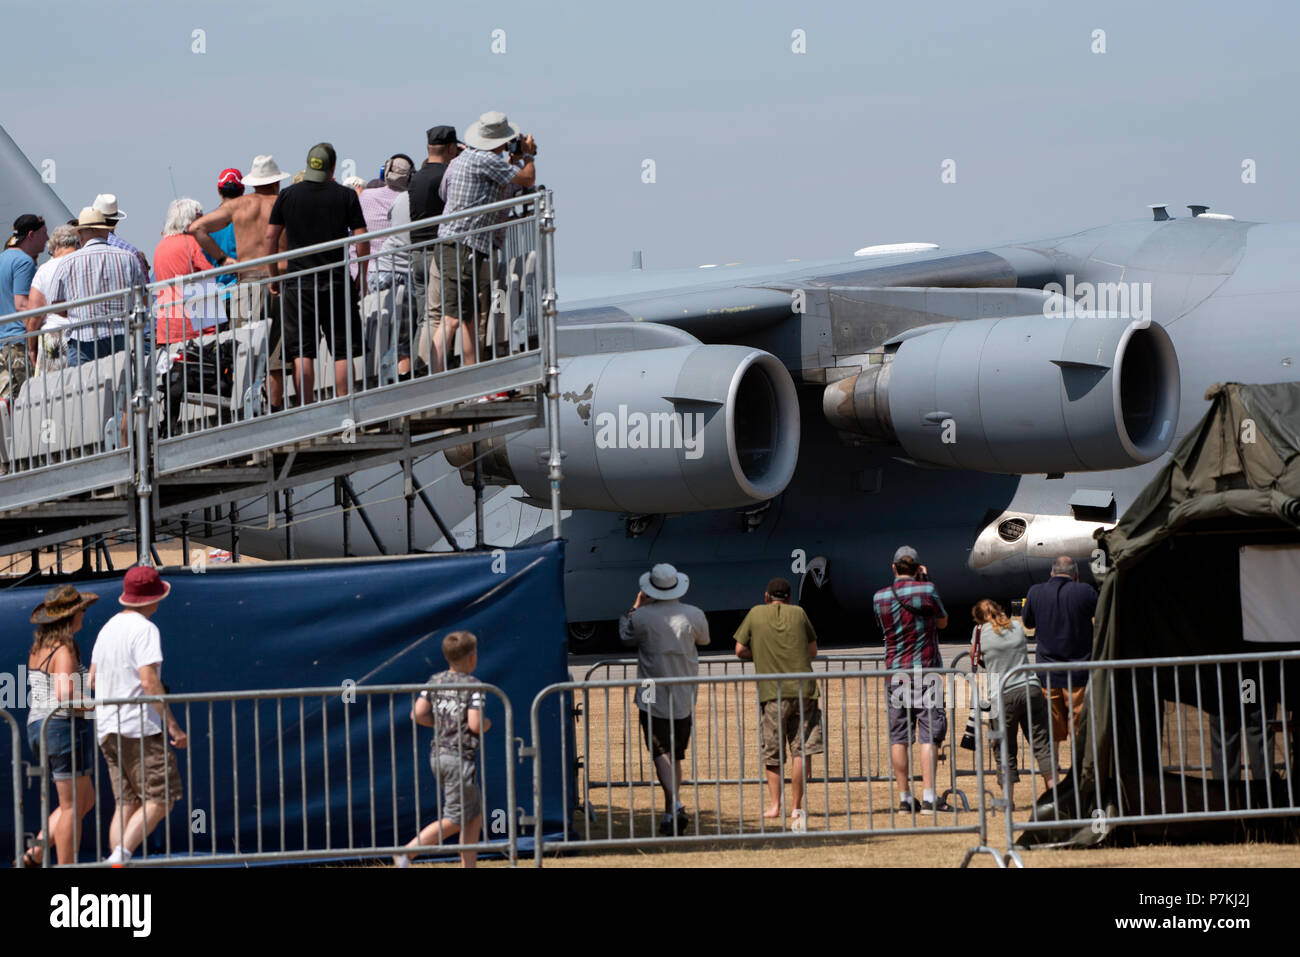 Yeovilton Royal Naval Air Station, Somerset, UK.  Spectators watch the arrival of a C17 Globemaster jet of the US Air Force. - Stock Image